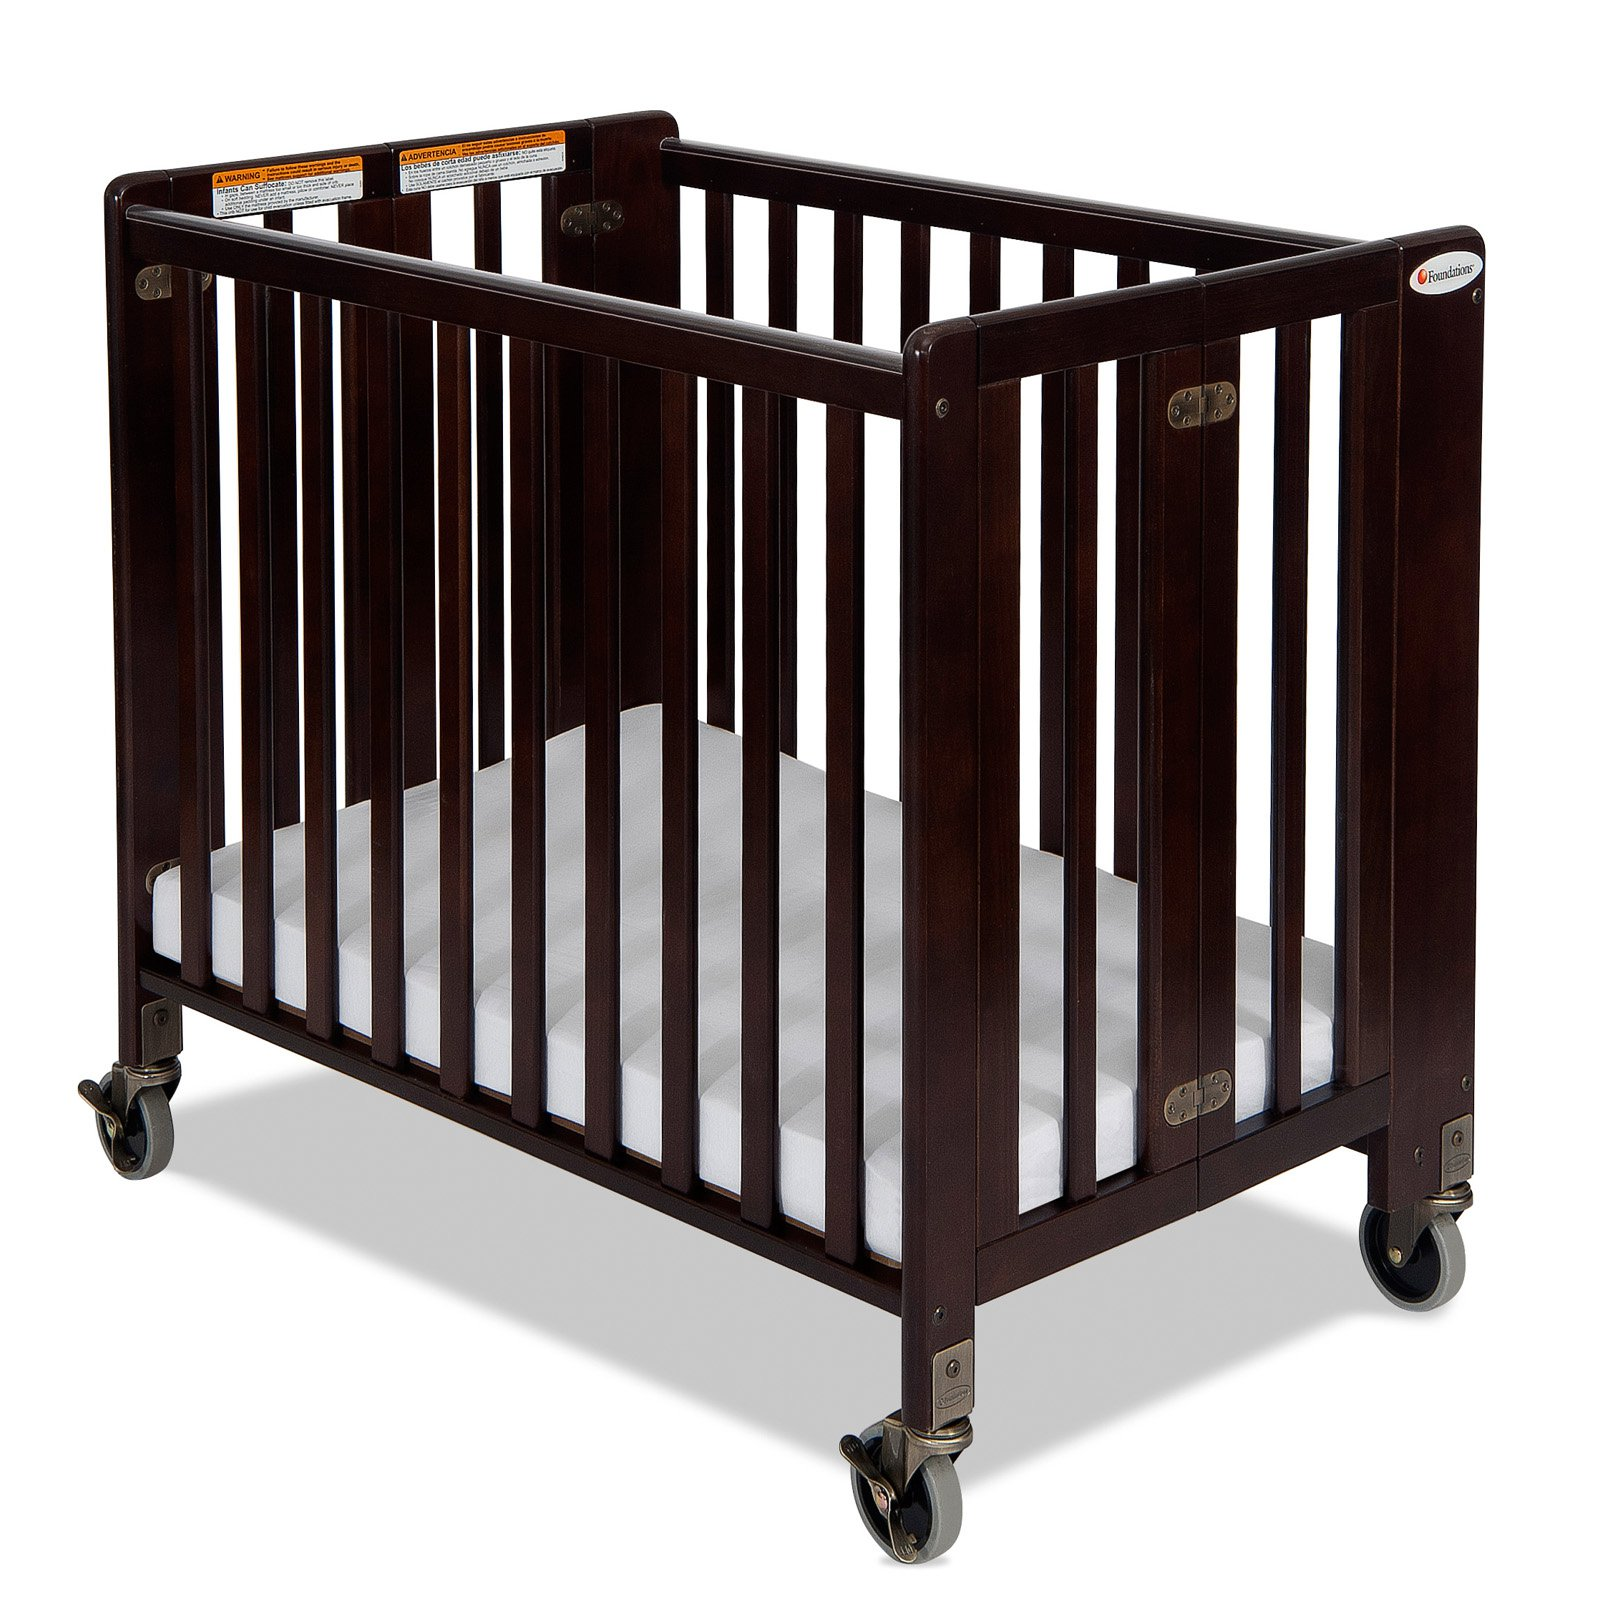 Foundations HideAway Folding Compact Crib - Antique Cherry